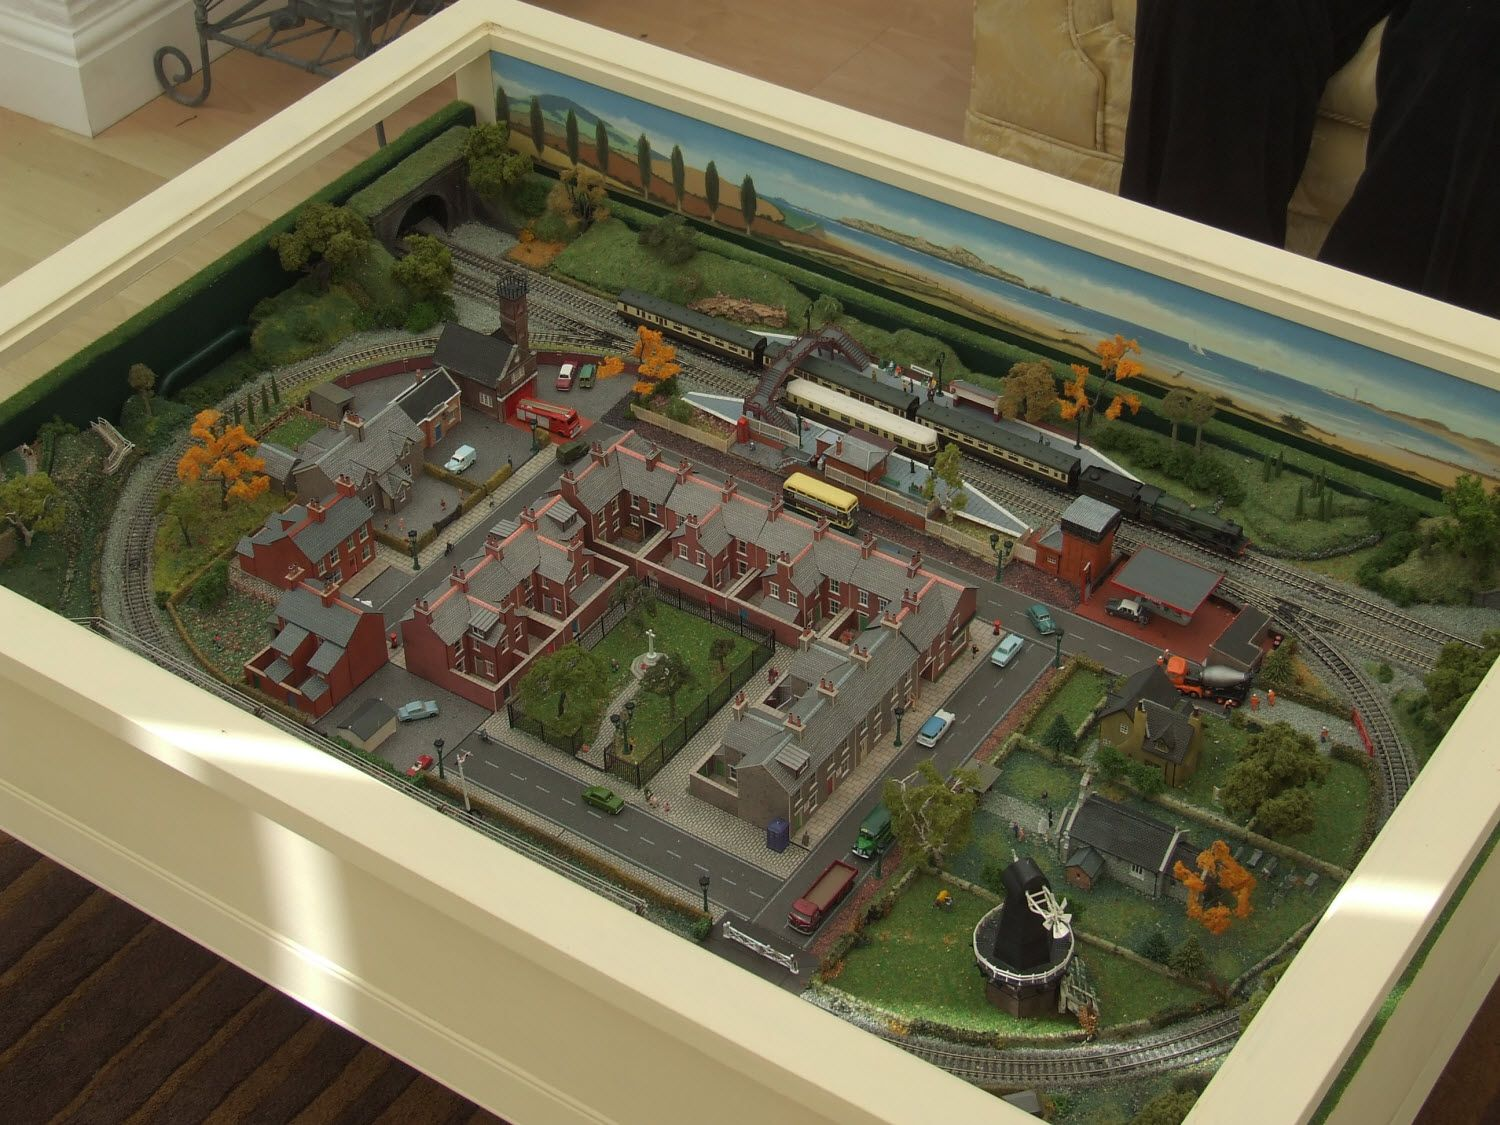 Delicieux Model Railroad In A Coffee Table